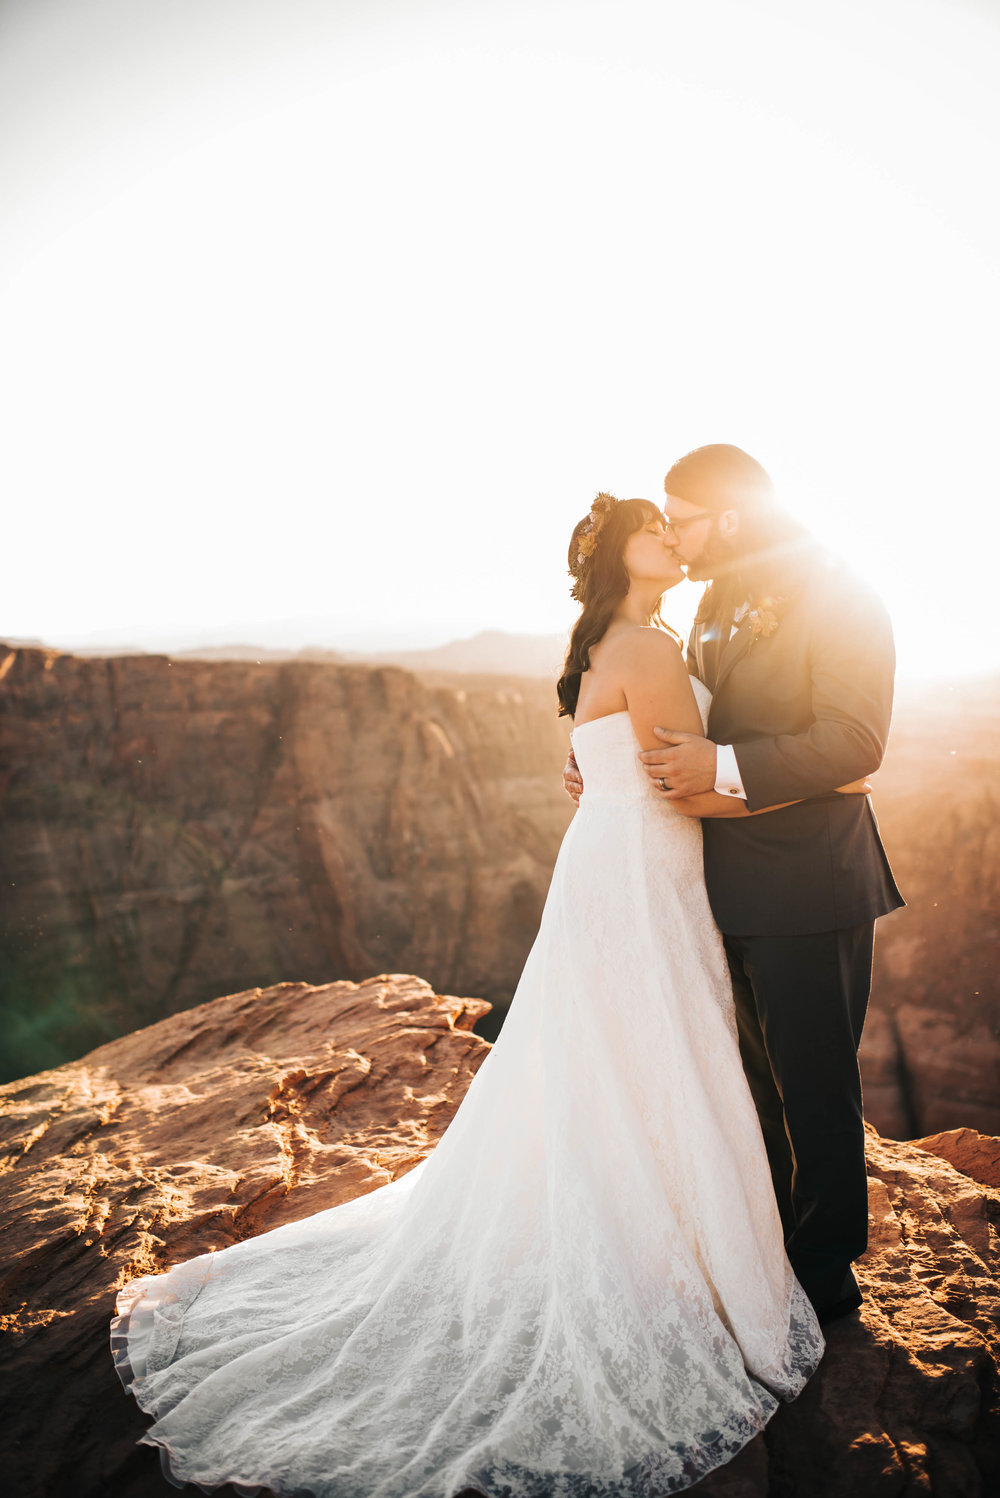 oregon arizon california utah georgia nontraditional adventure wedding elopement photographer-507.jpg